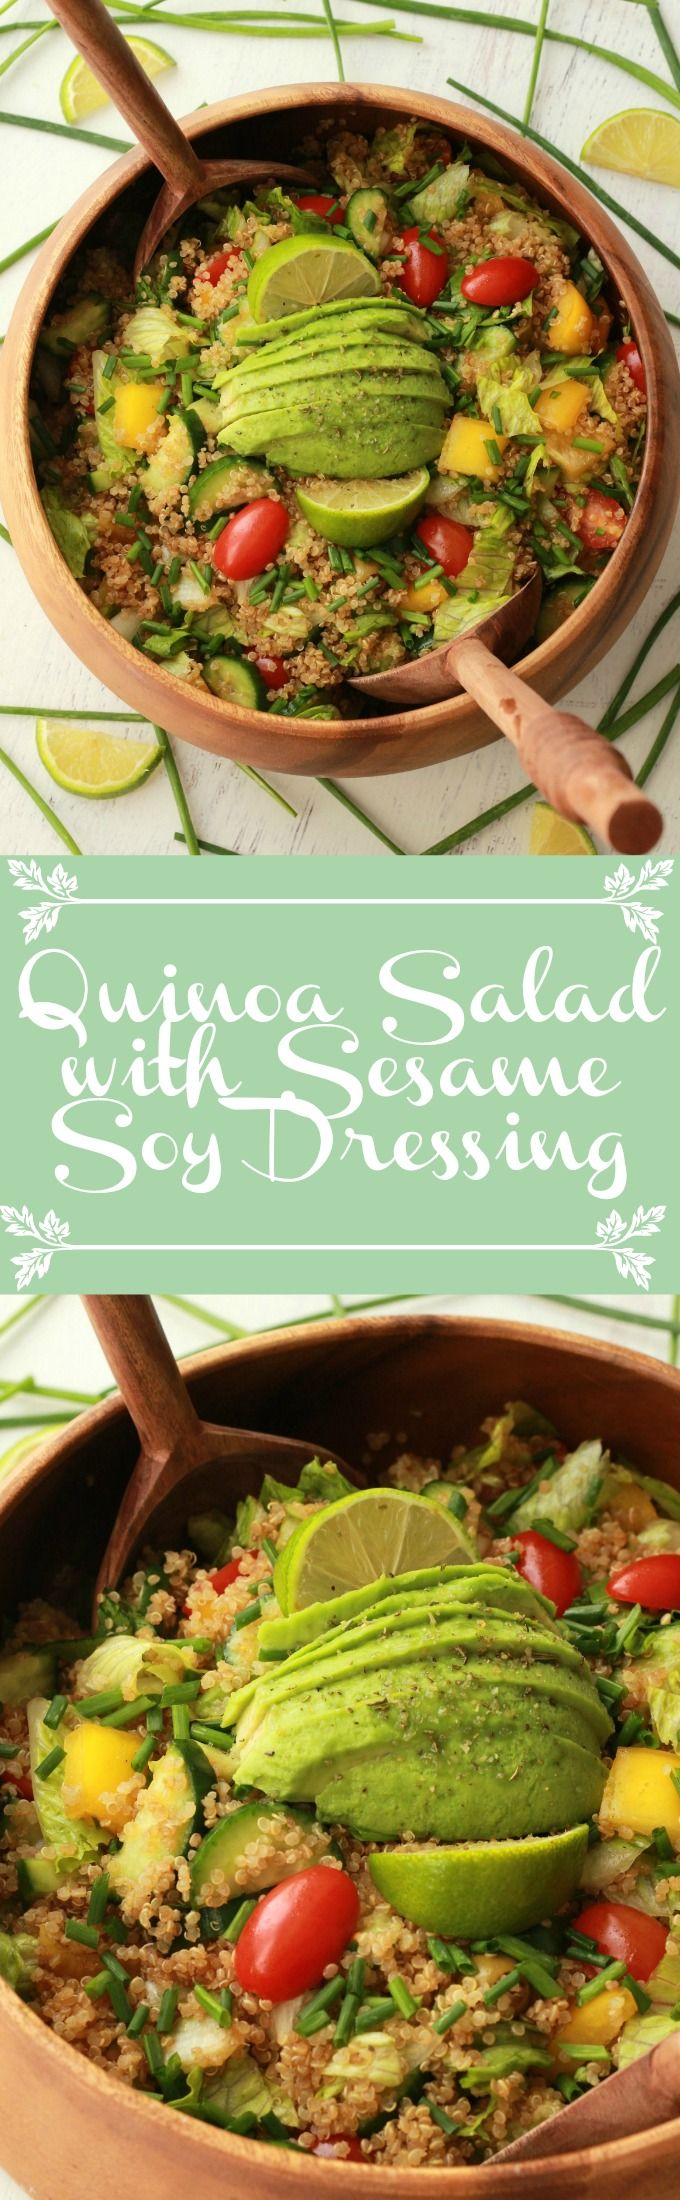 Fabulously healthy Quinoa Salad with Sesame Soy Dressing. Vegan and Gluten-free! Vegan | Gluten-Free | Vegan Food | Vegan Recipes | Vegan Salad